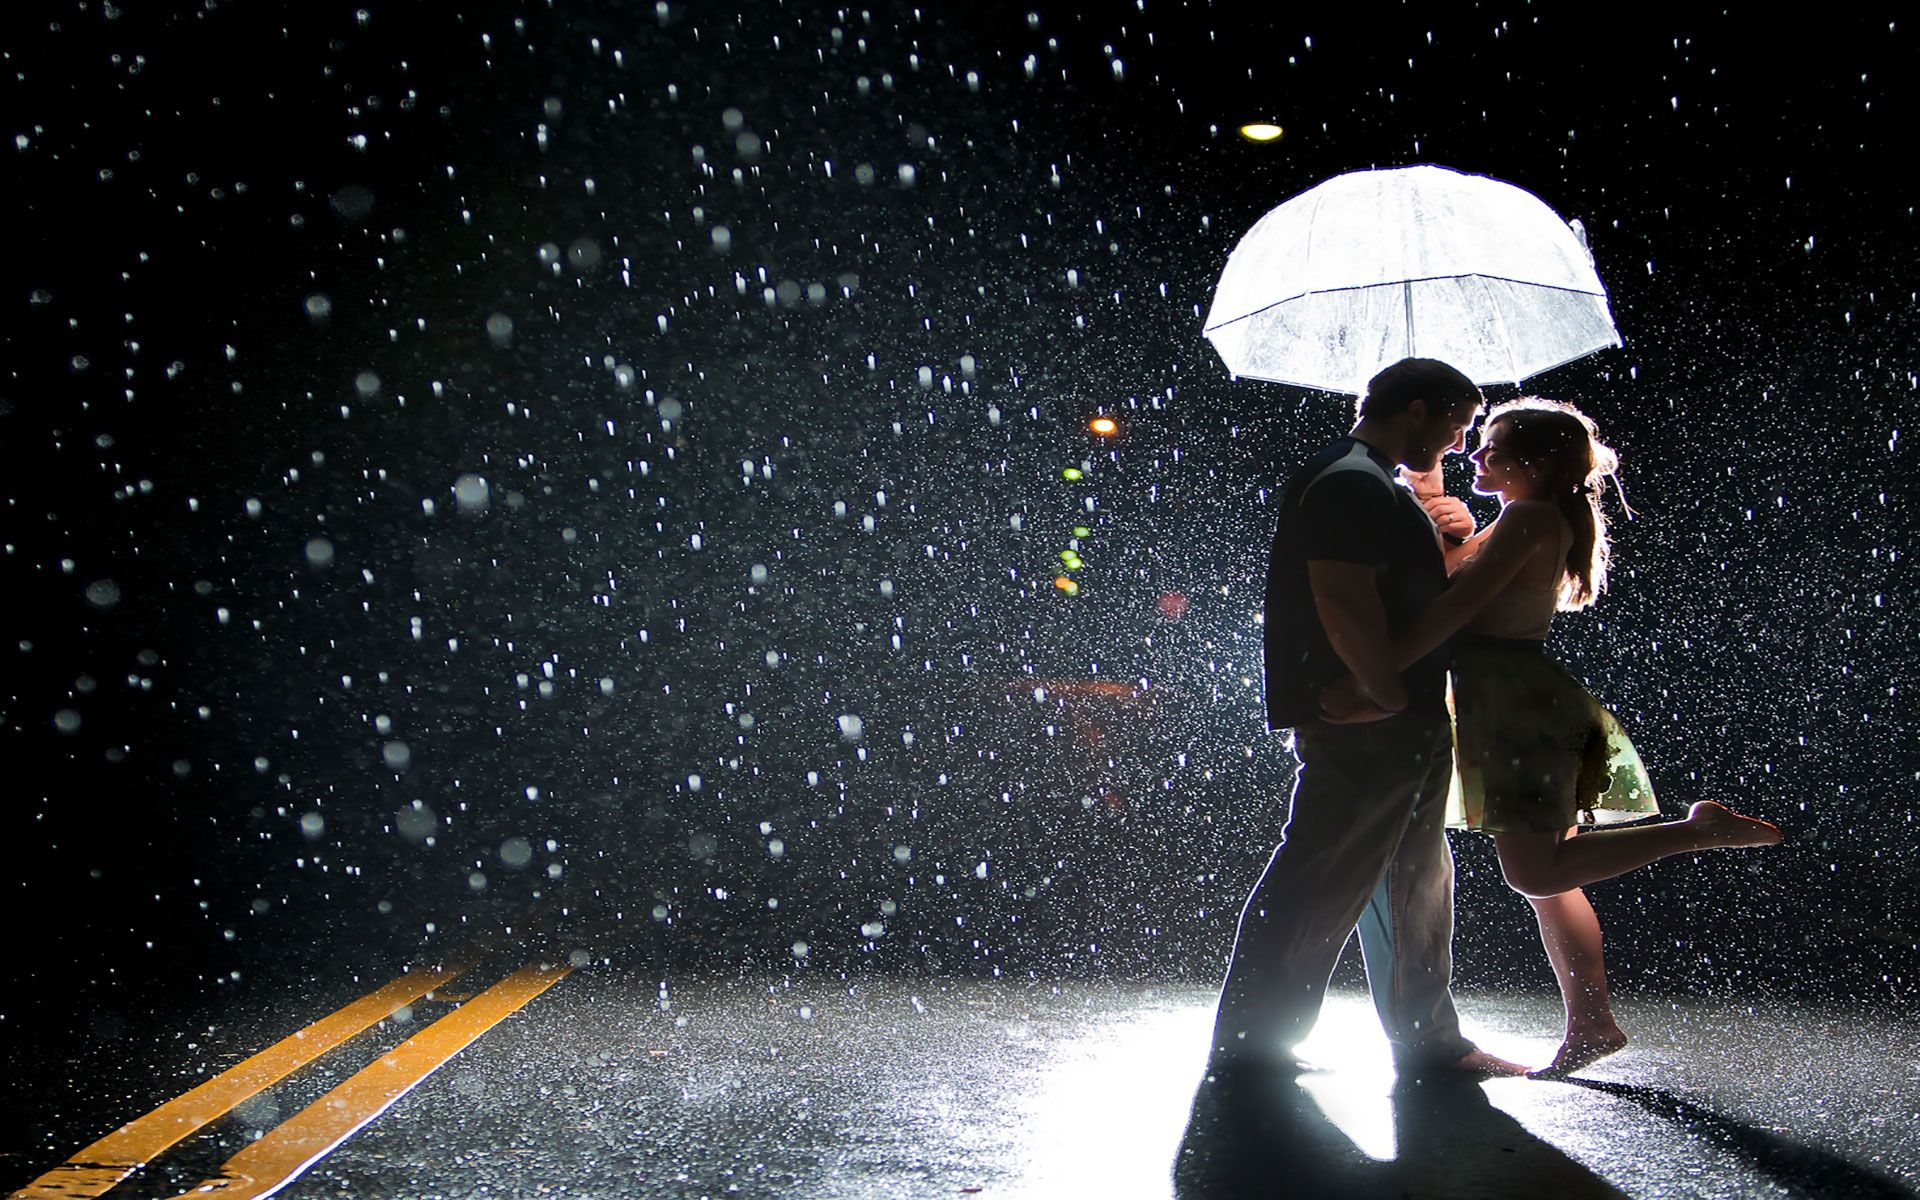 Rainy Day Girl Live Wallpaper Download Joy Of Couple On A Rainy Street Romantic Amp Sad Couple